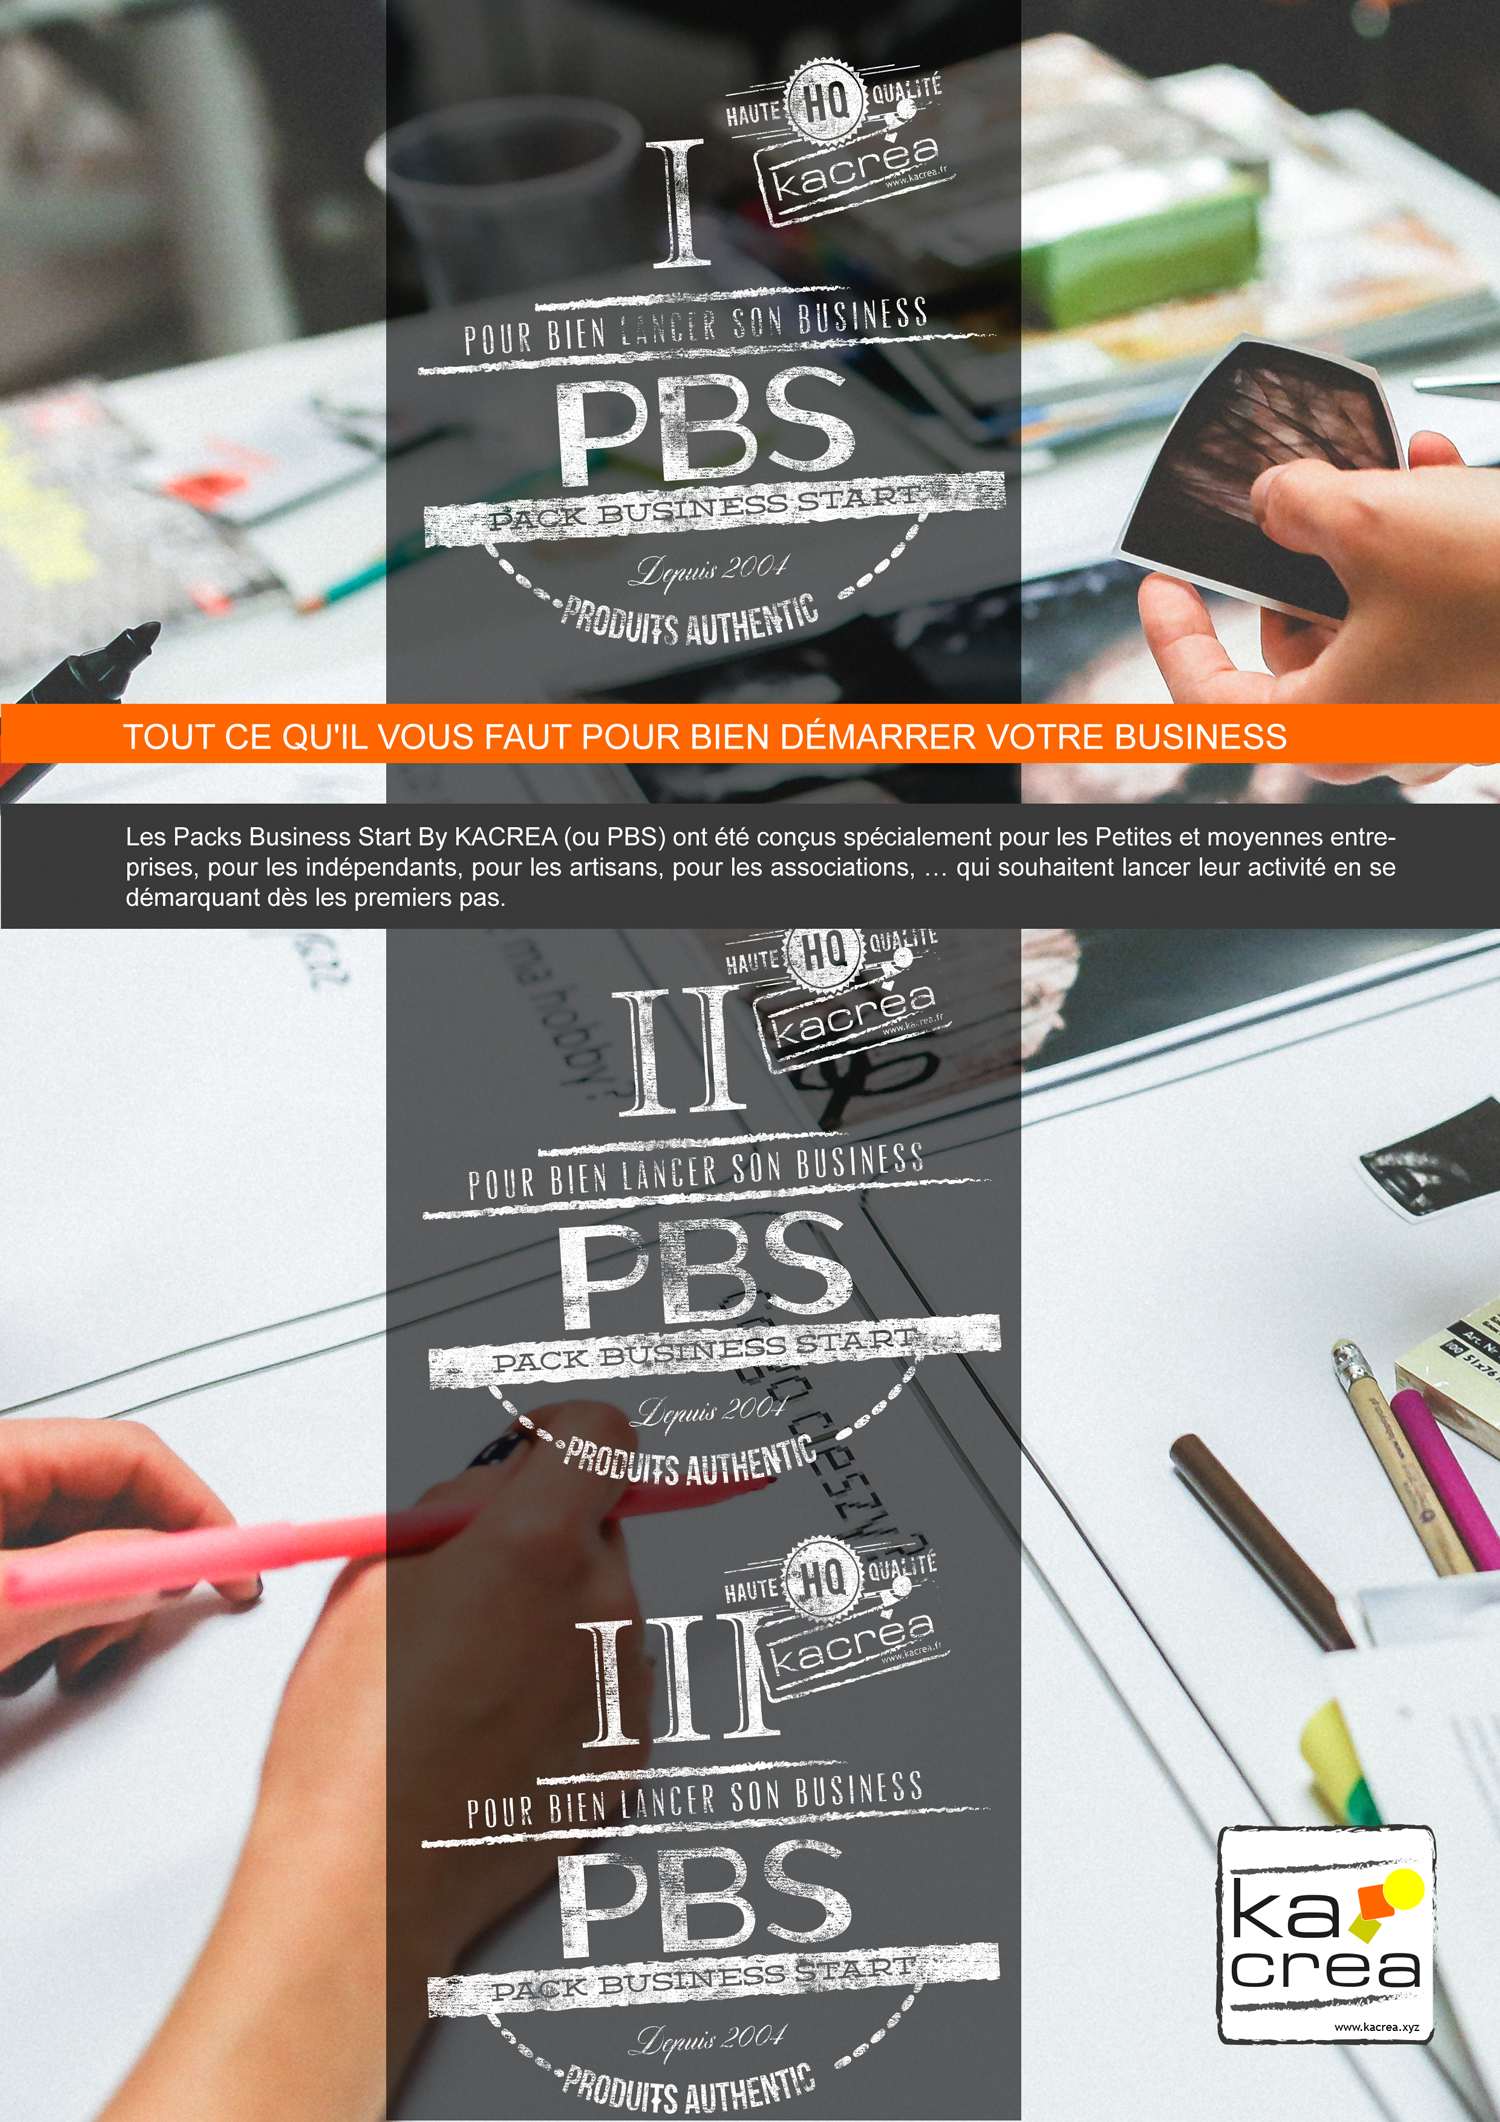 PBS Packs Business Start pour commencer son activité